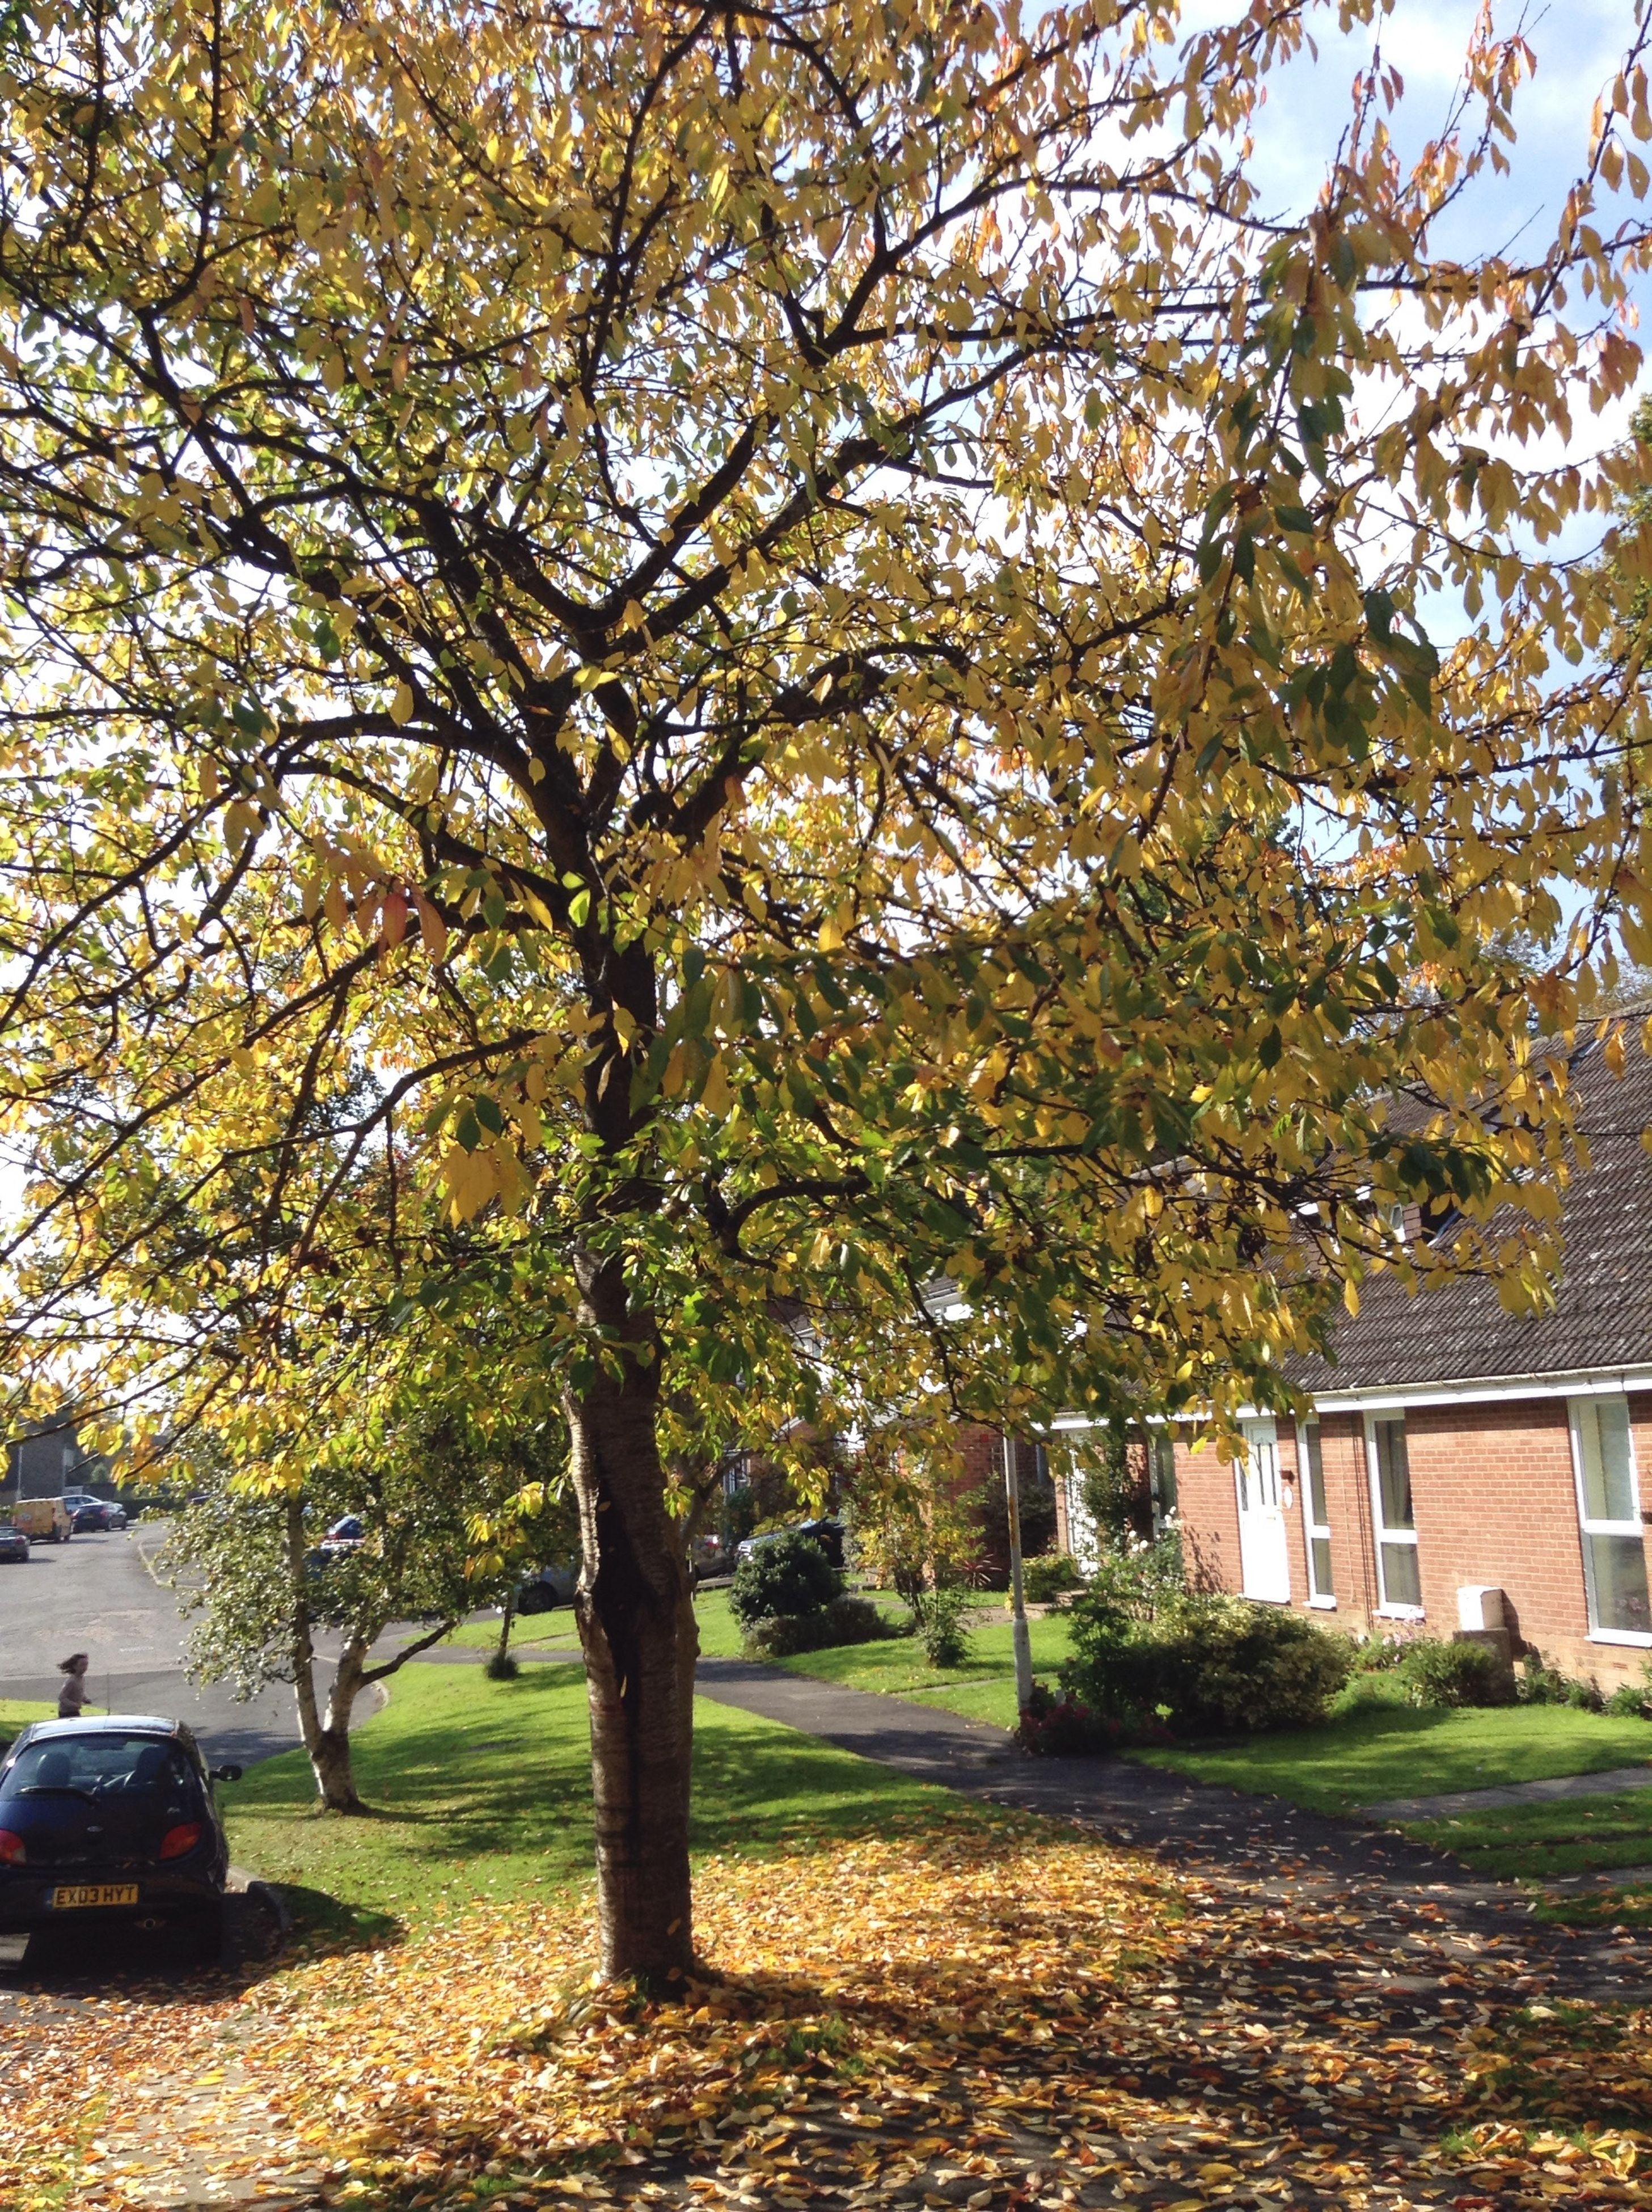 tree, autumn, change, building exterior, branch, growth, built structure, architecture, season, park - man made space, yellow, nature, sunlight, day, transportation, outdoors, leaf, tranquility, street, park